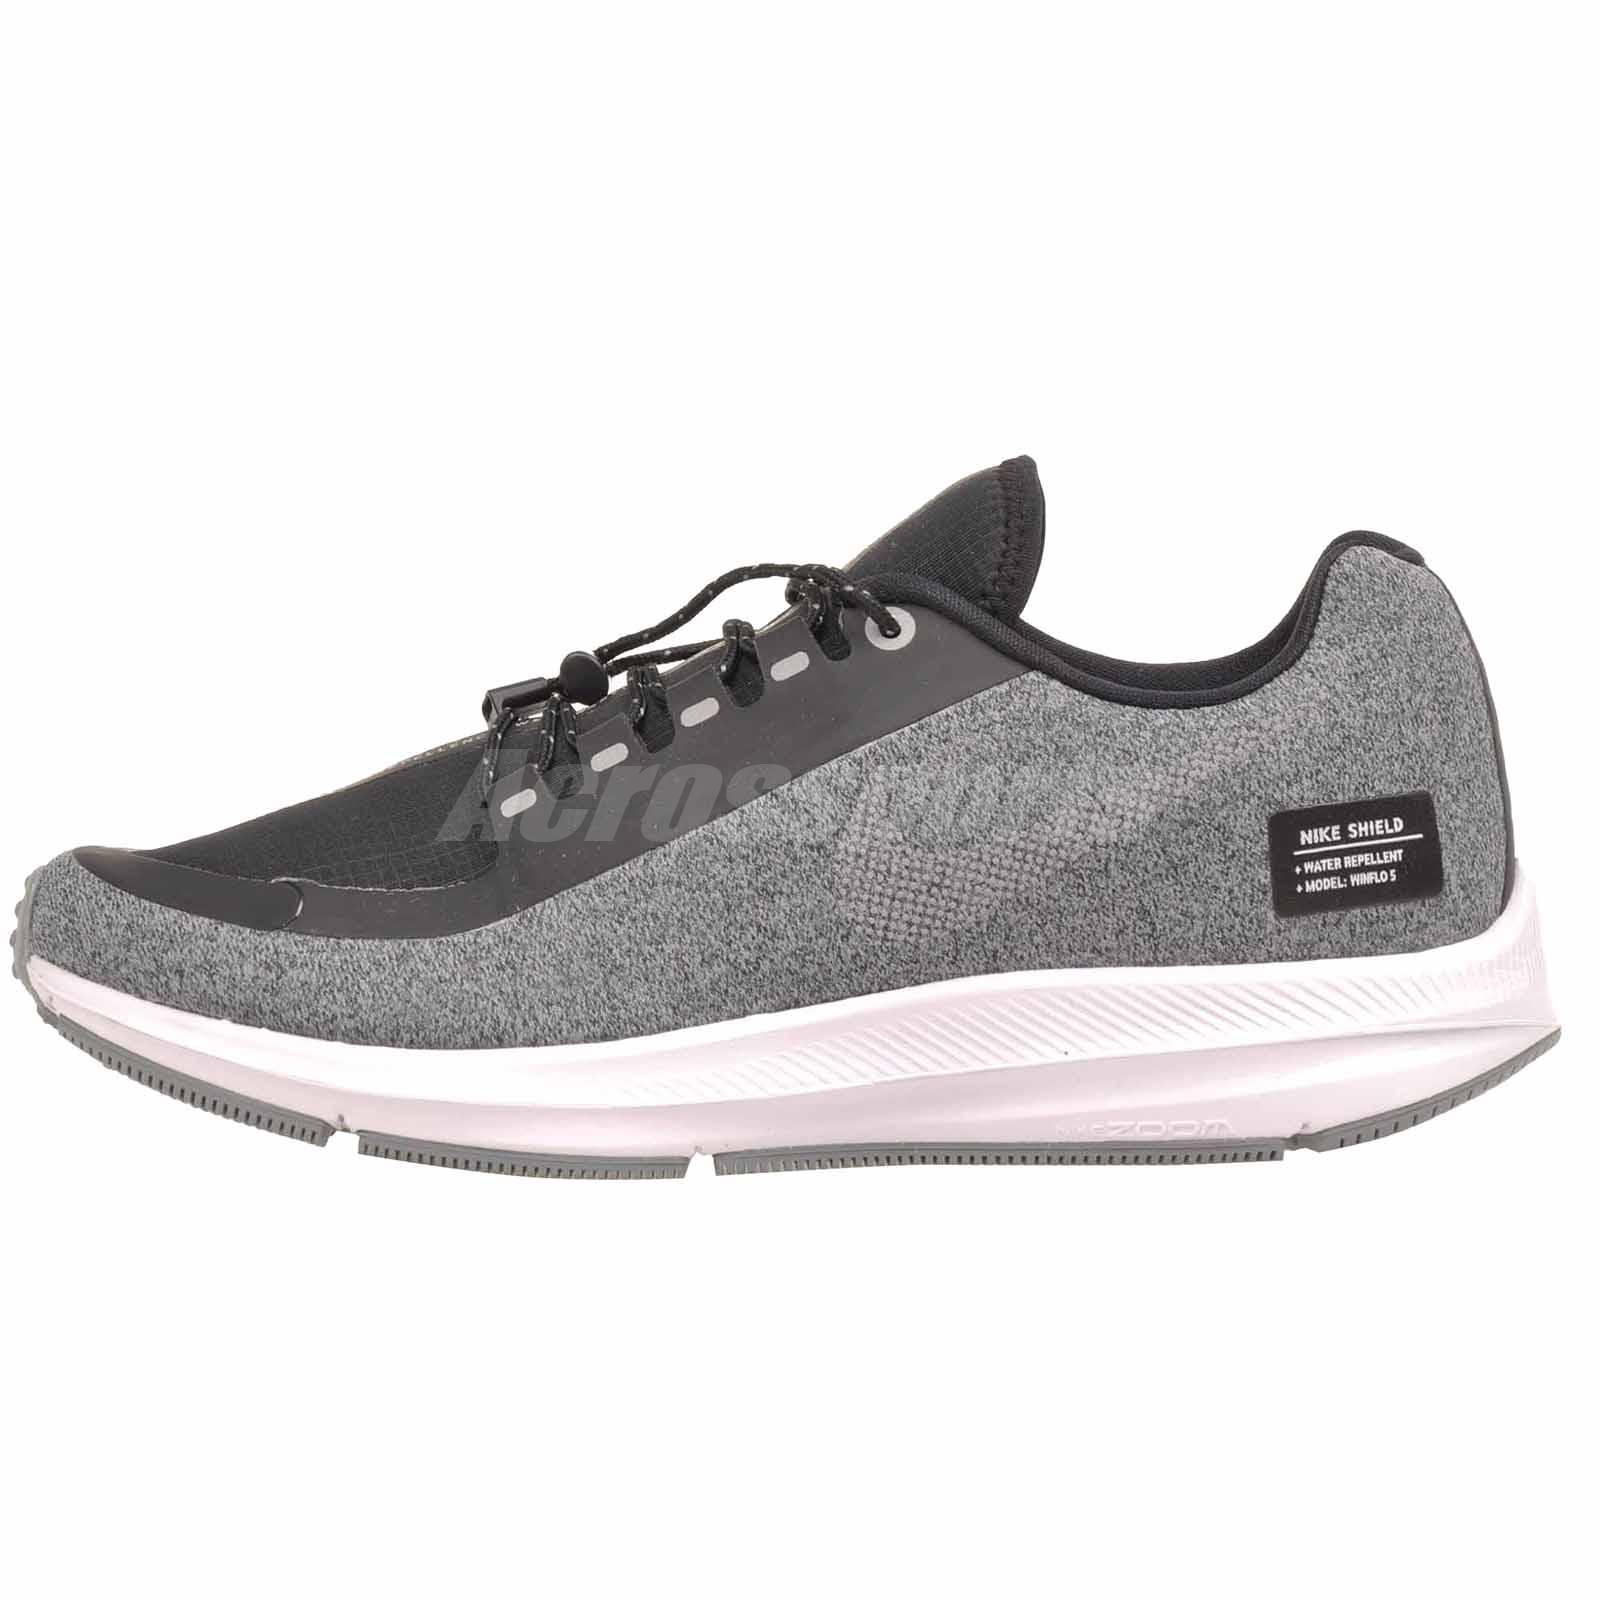 Acostumbrarse a Triturado realidad  Nike W Zoom Winflo 5 Run Shield Running Womens Shoes Black Grey ...